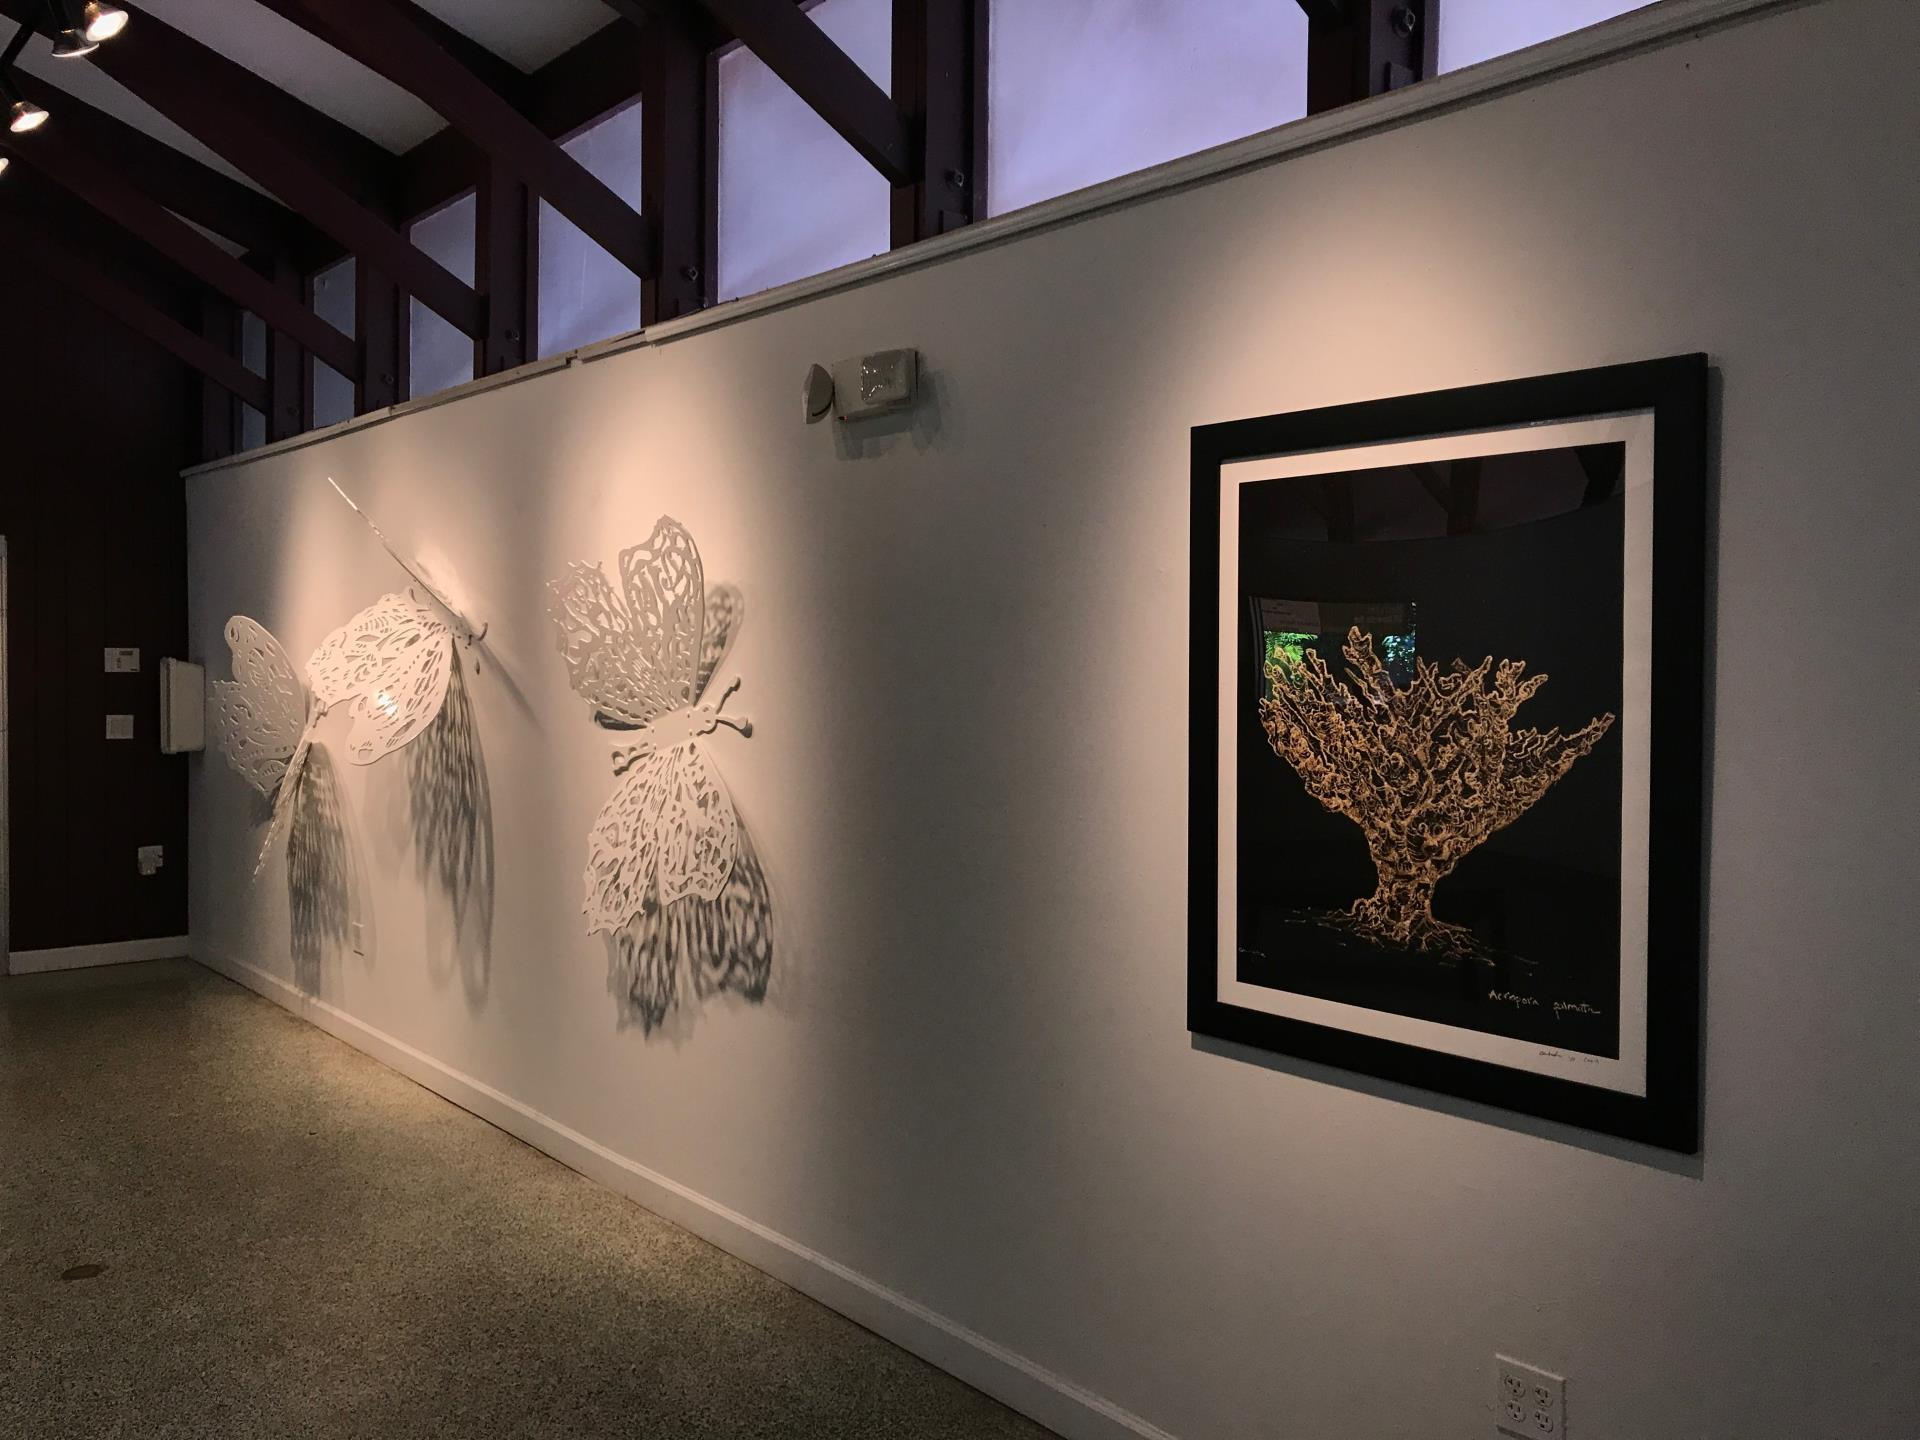 HIBISCUS GALLERY